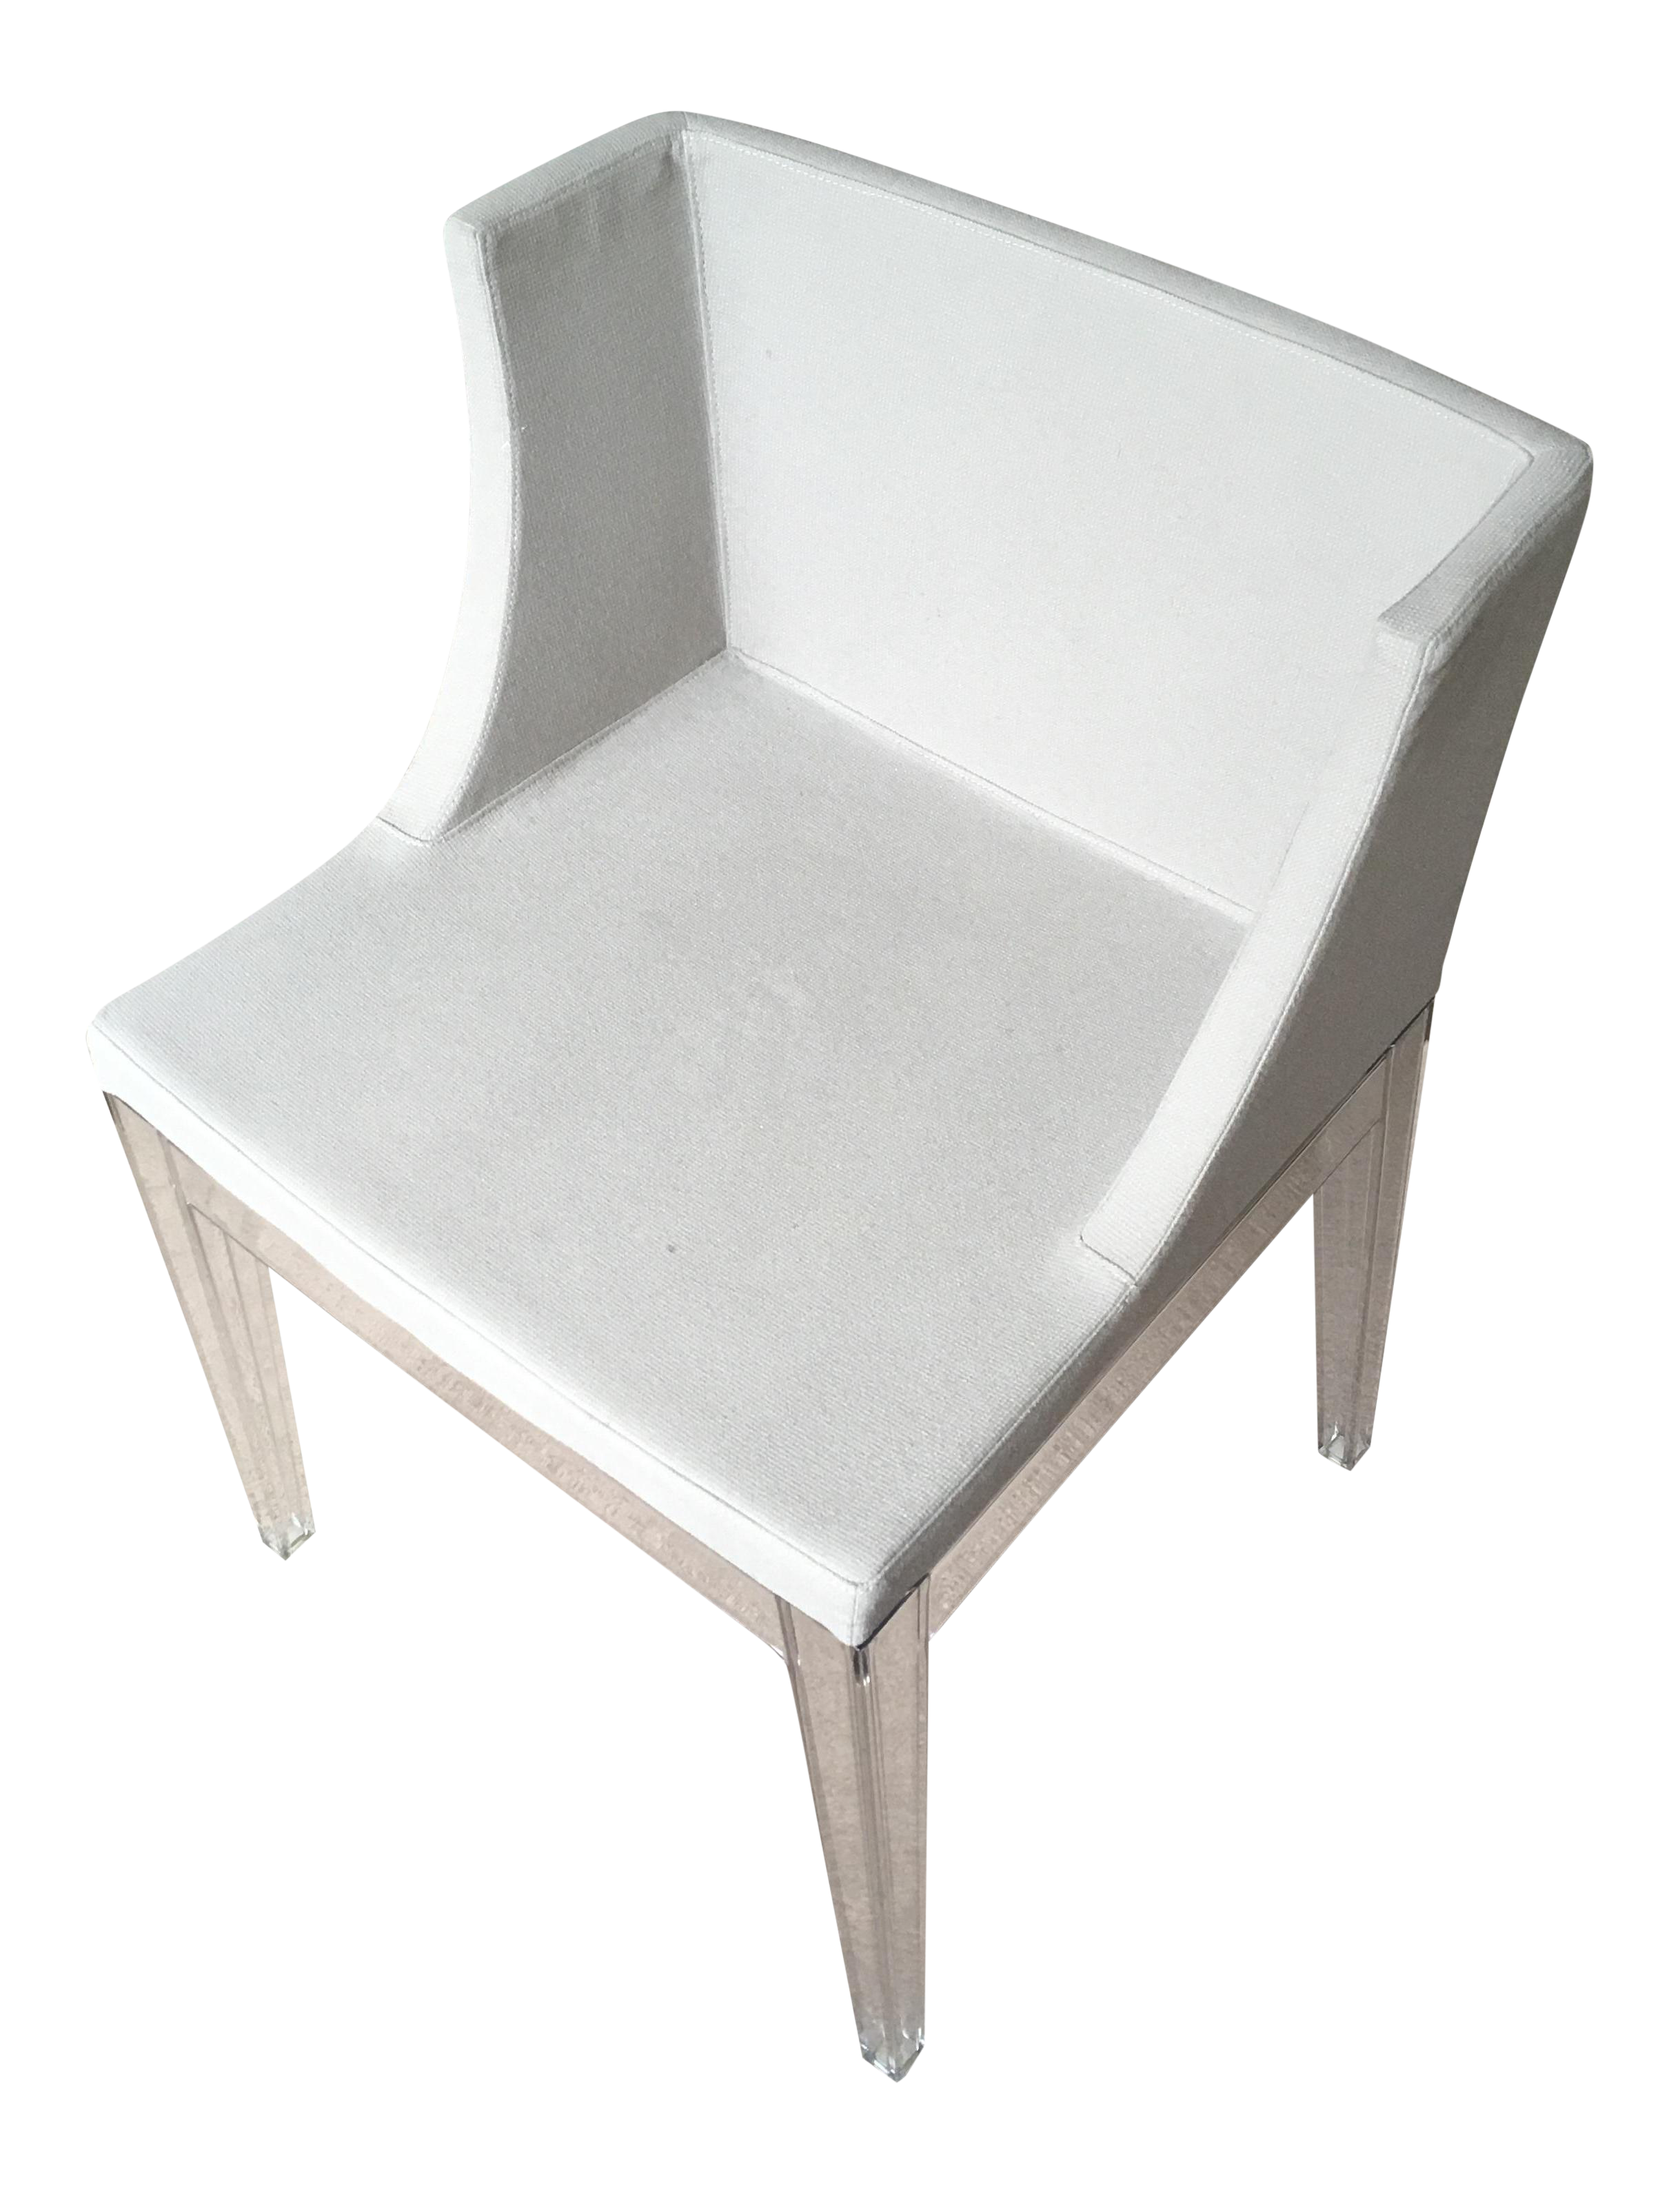 Phillippe starck for kartell mademoiselle chair chairish - Chaise mademoiselle starck ...